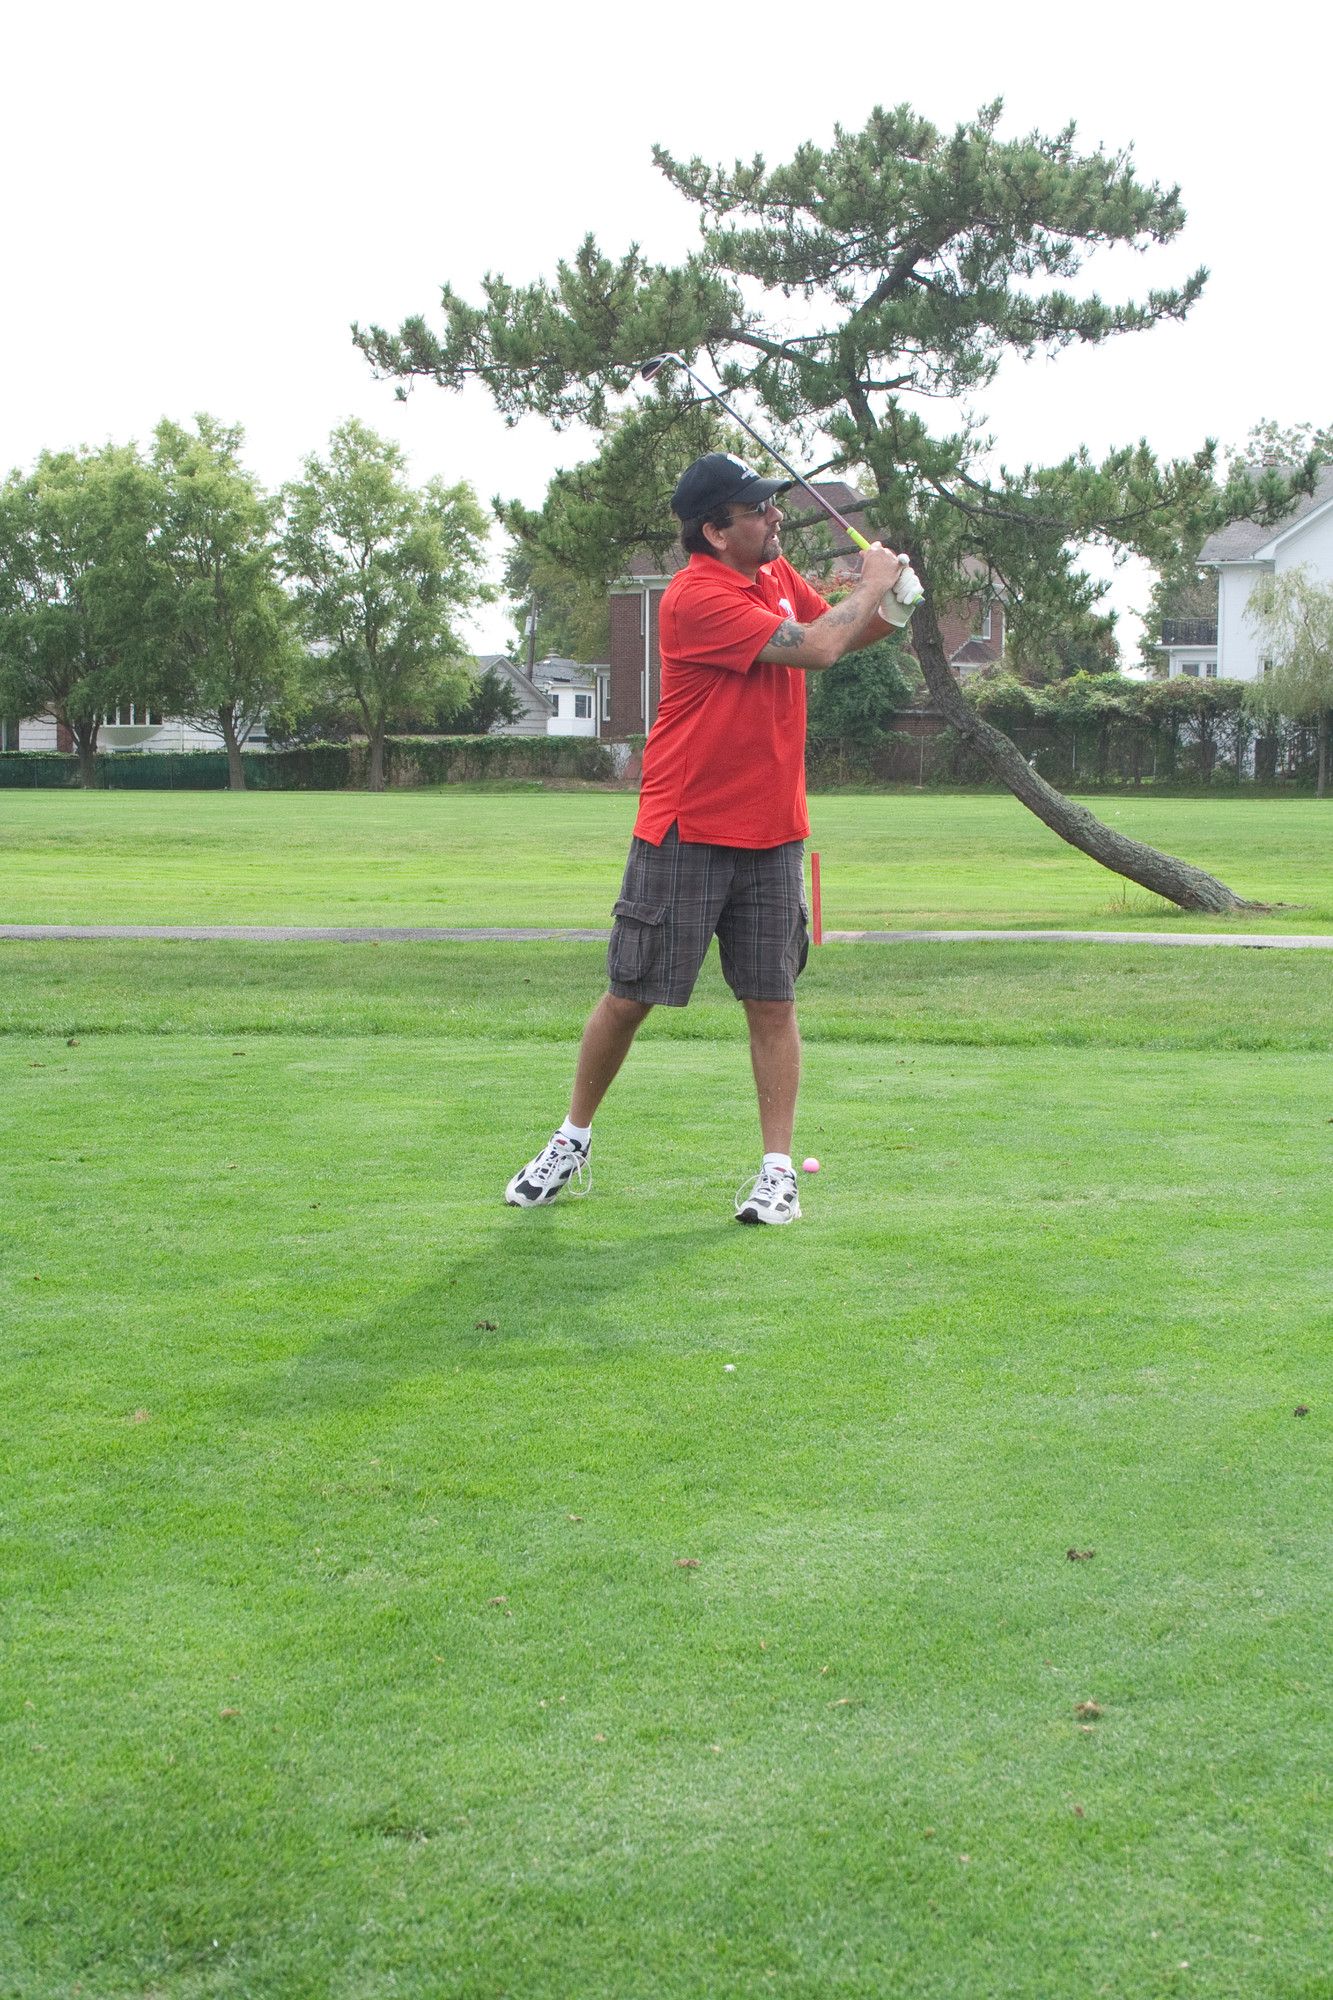 On the green at the Lawrence Yacht & Country Club, military veteran Tom Amendola followed through on his golf swing.